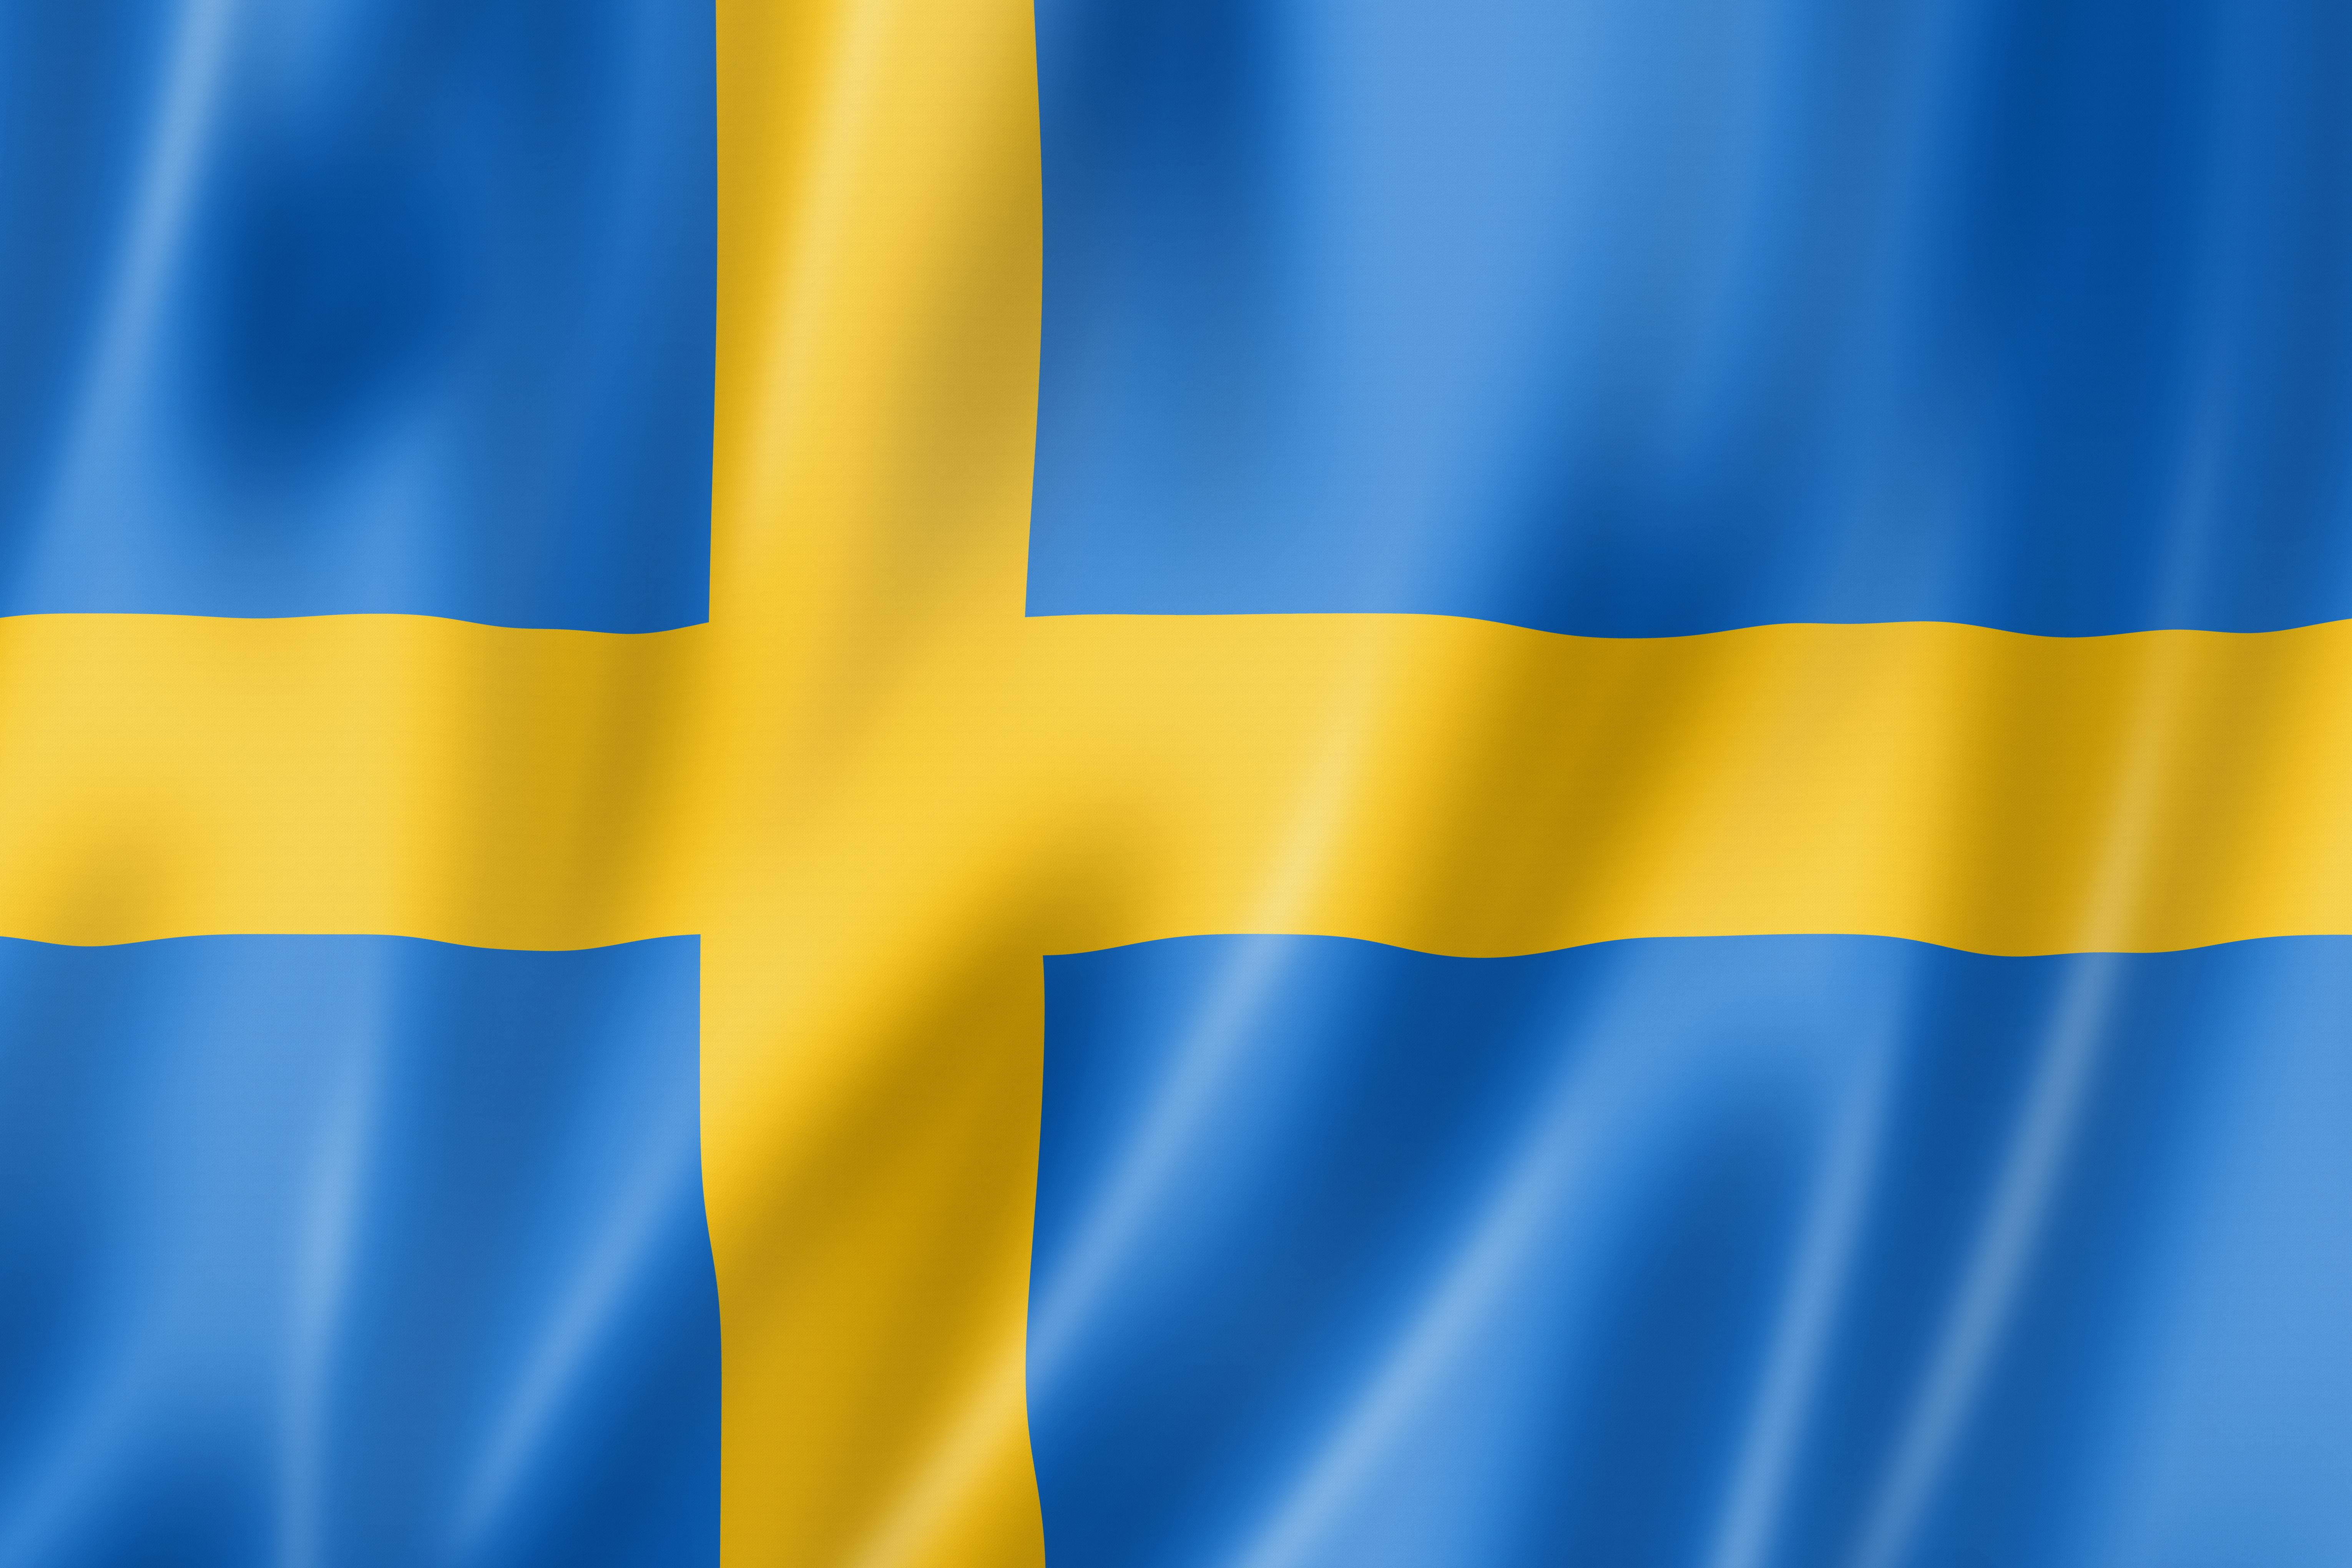 Misc Sweden Flag 6120x4080px – 100% Quality HD Wallpapers